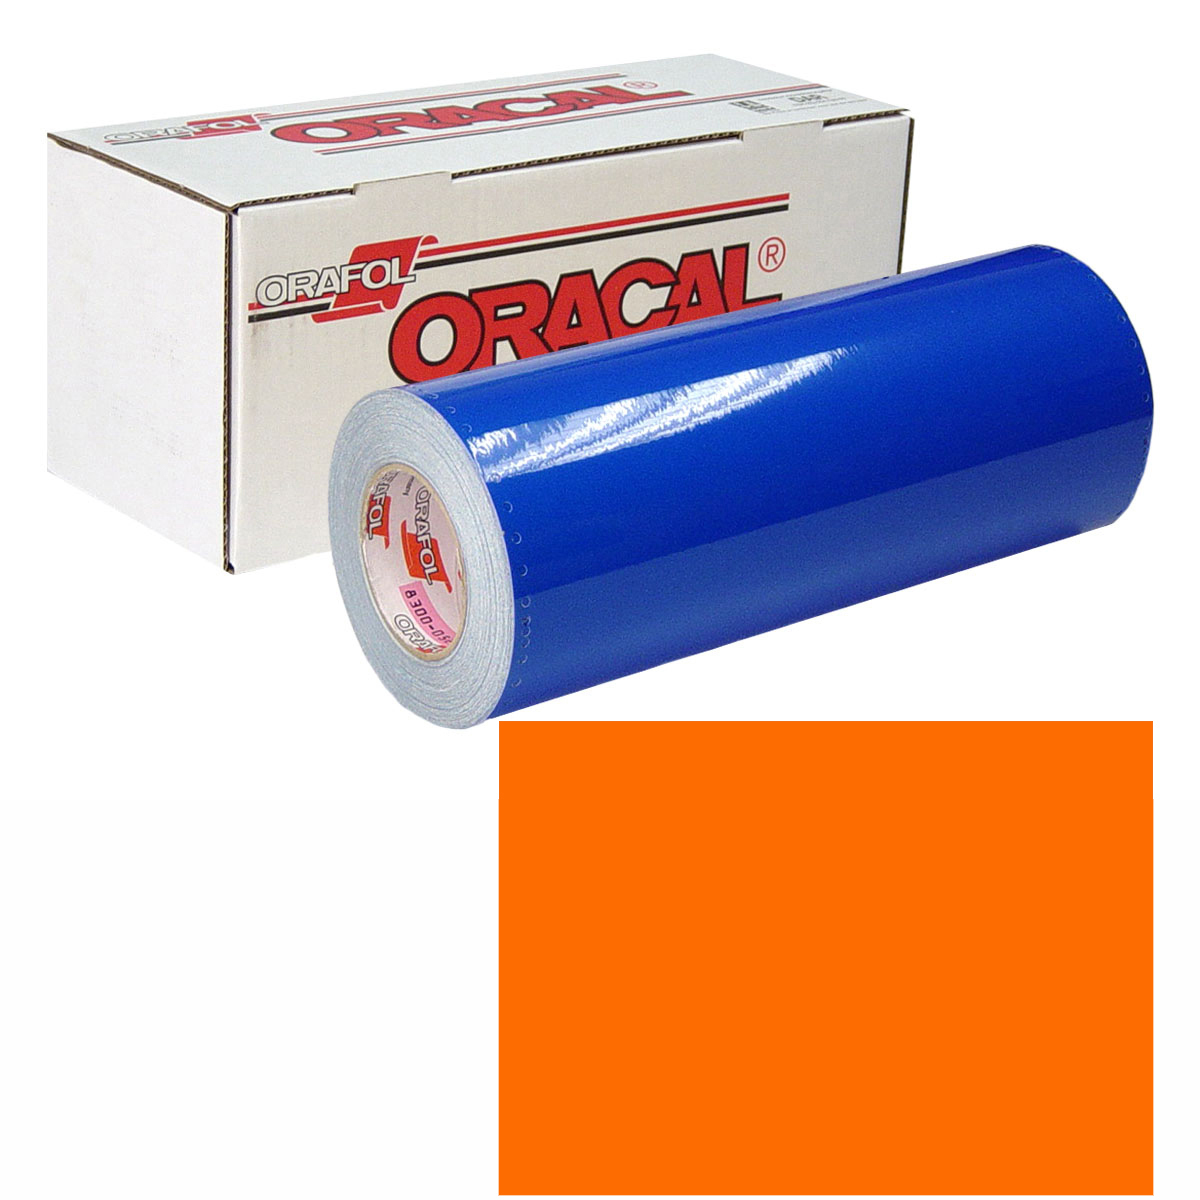 ORACAL 631 Unp 48in X 50yd 035 Pastel Orange